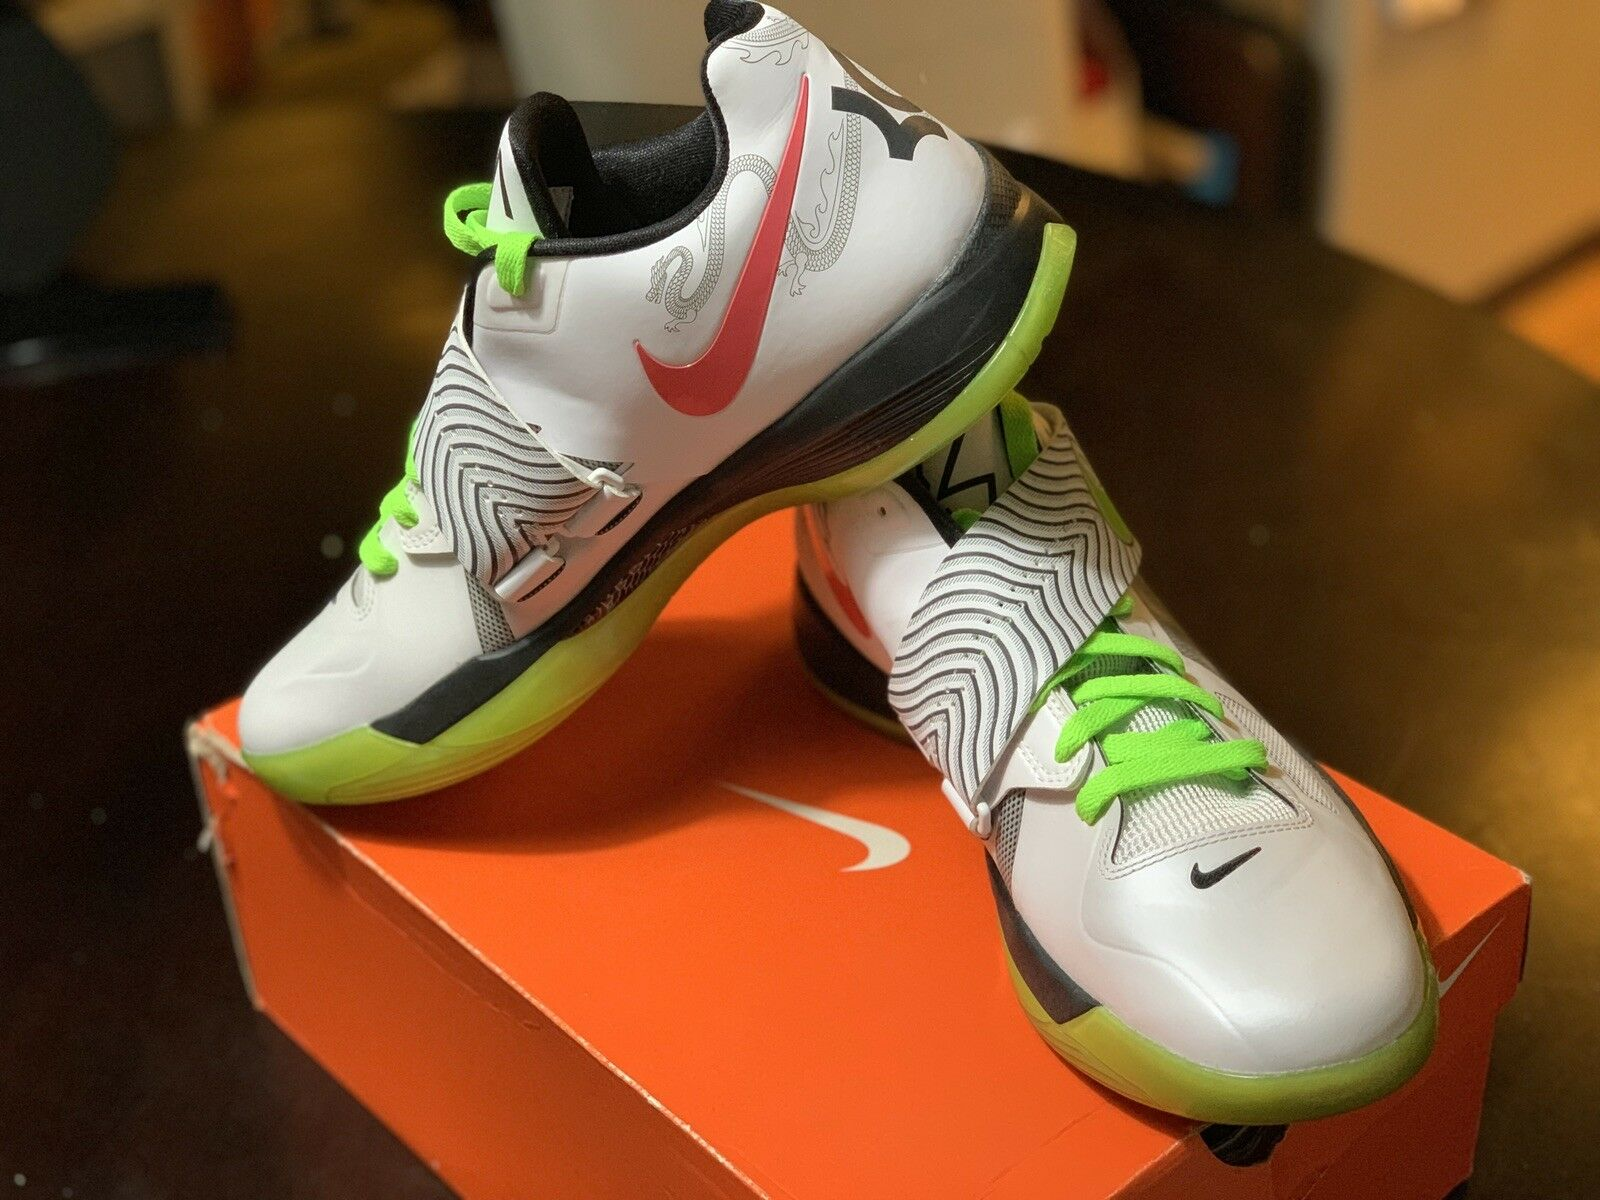 New In Box EXTREMELY RARE KD IV Year Of The Dragon NIKE ID SIZE 10 MUST SEE